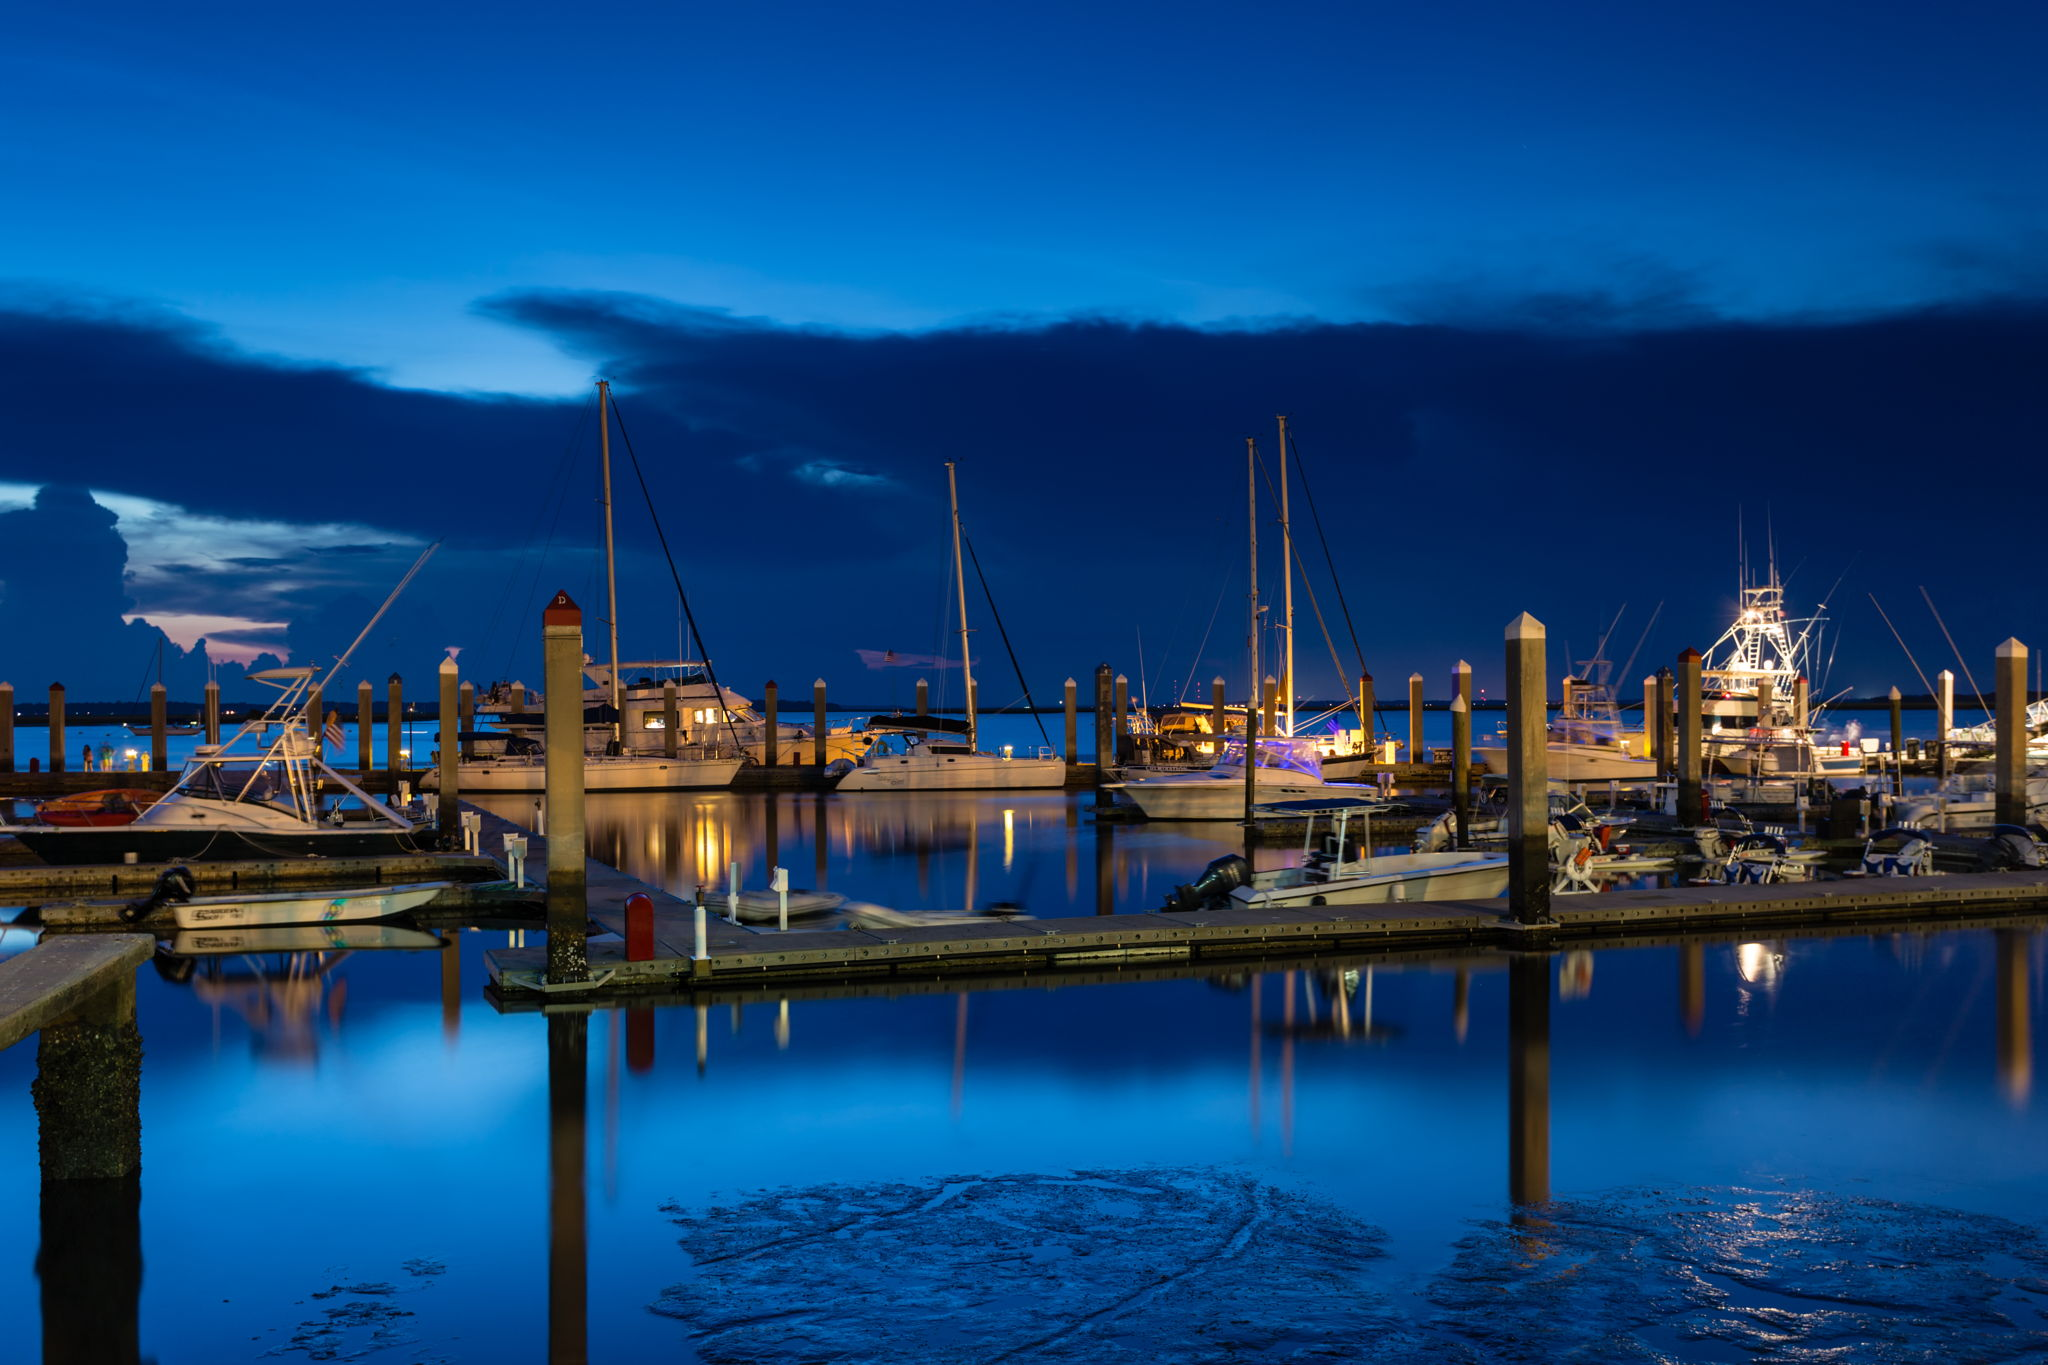 Fernandina's picturesque marina, the famed spot of the giant shrimp drop every New Year's Eve